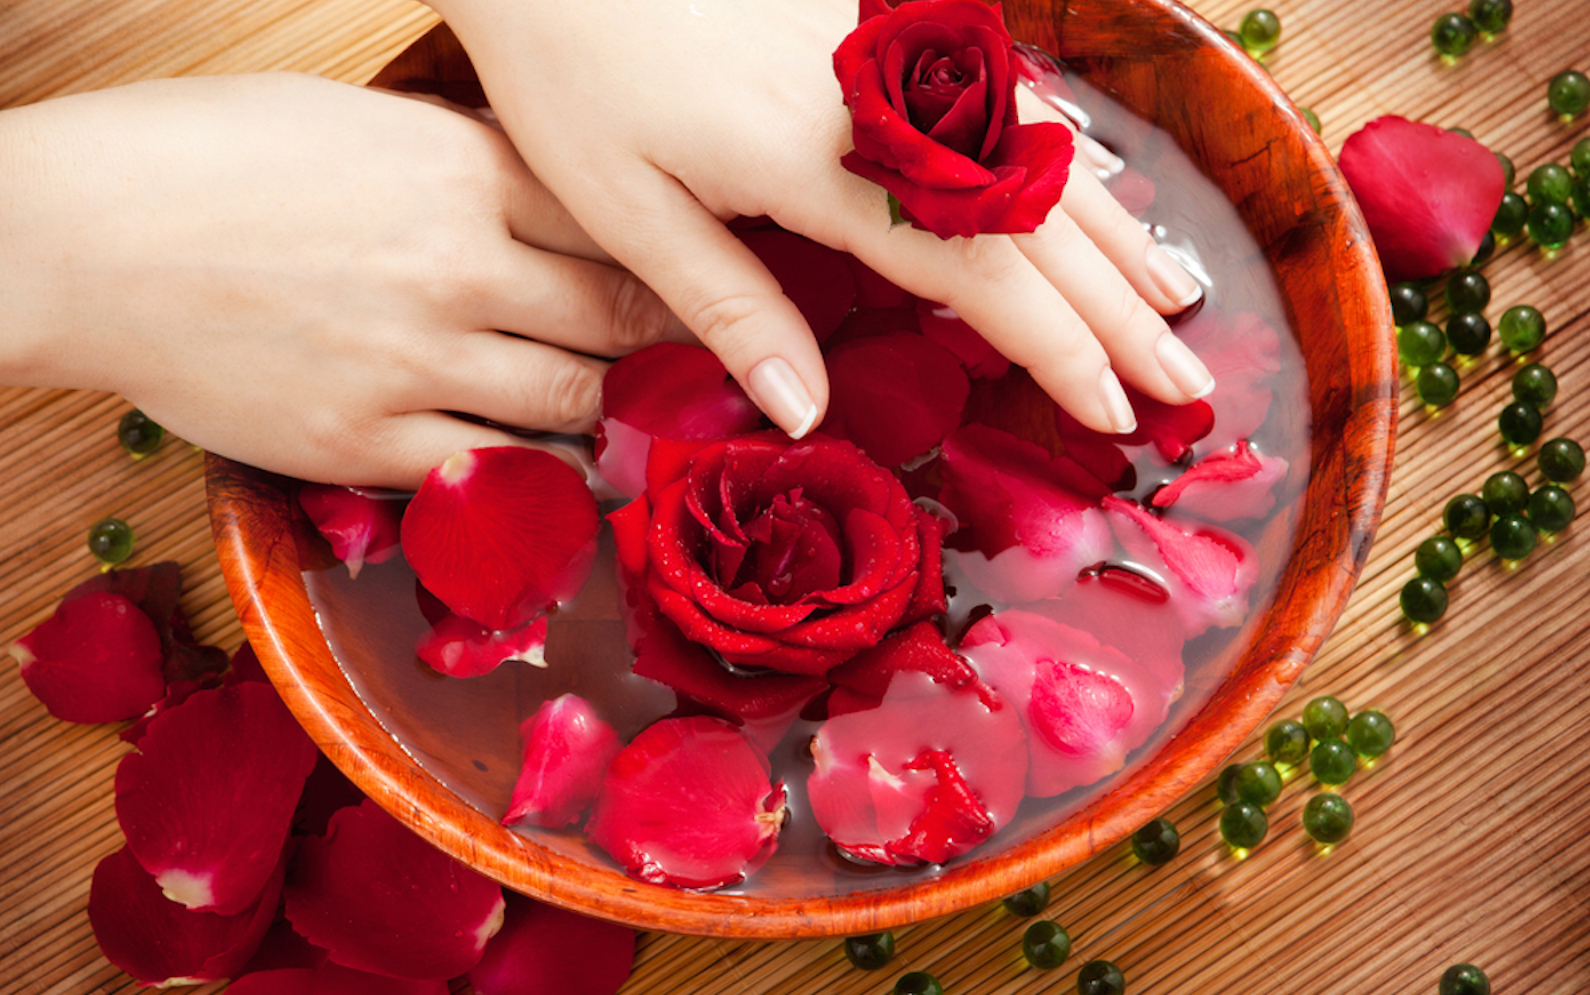 Benefits And Side Effects Of Drinking Rose Water